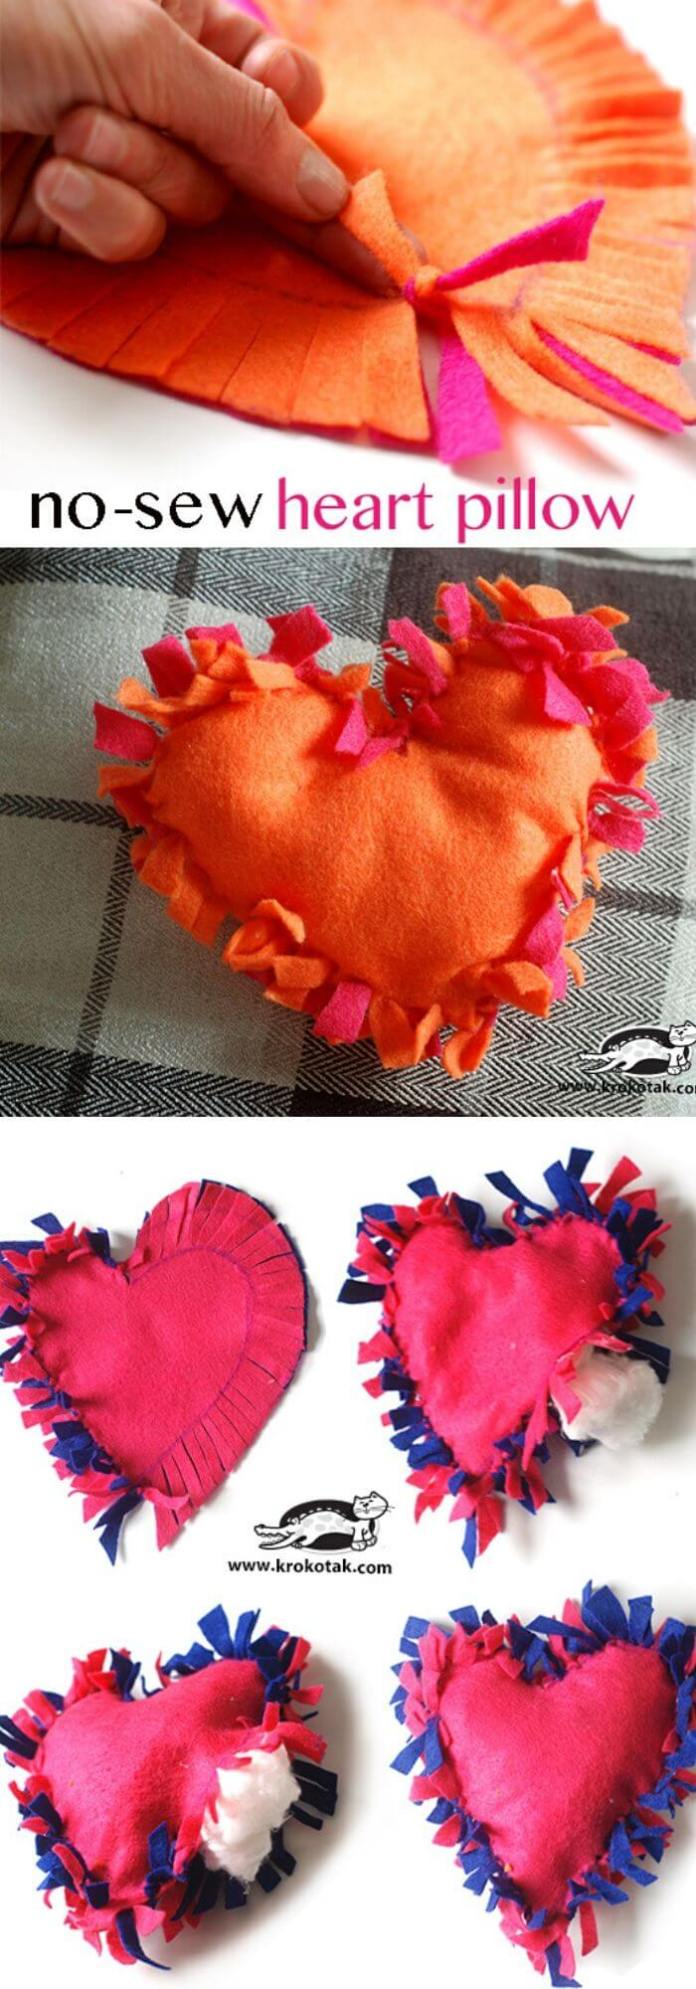 No sew heart pillow | Heart-Shaped Crafts For Valentine's Day